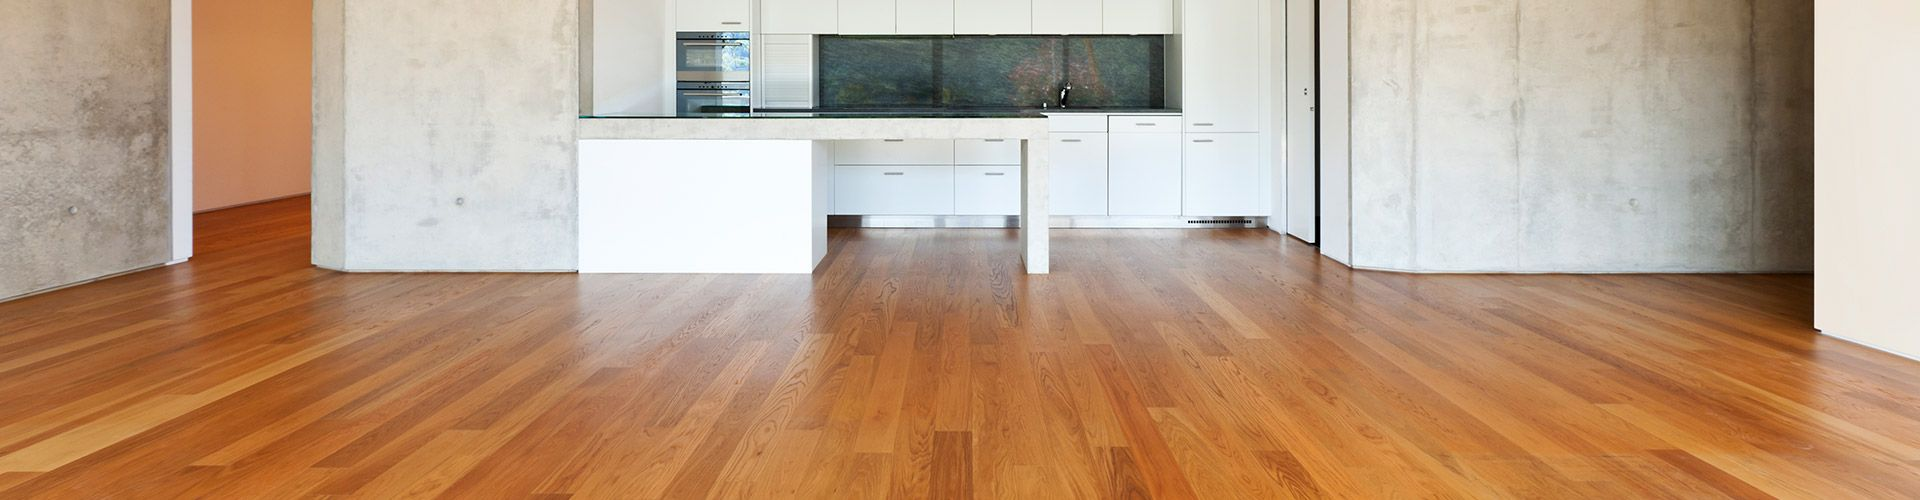 At First Cl Wood Flooring We Are Committed To Offering You The Best Quality Finish So That Your Stays As Good New For Many Years